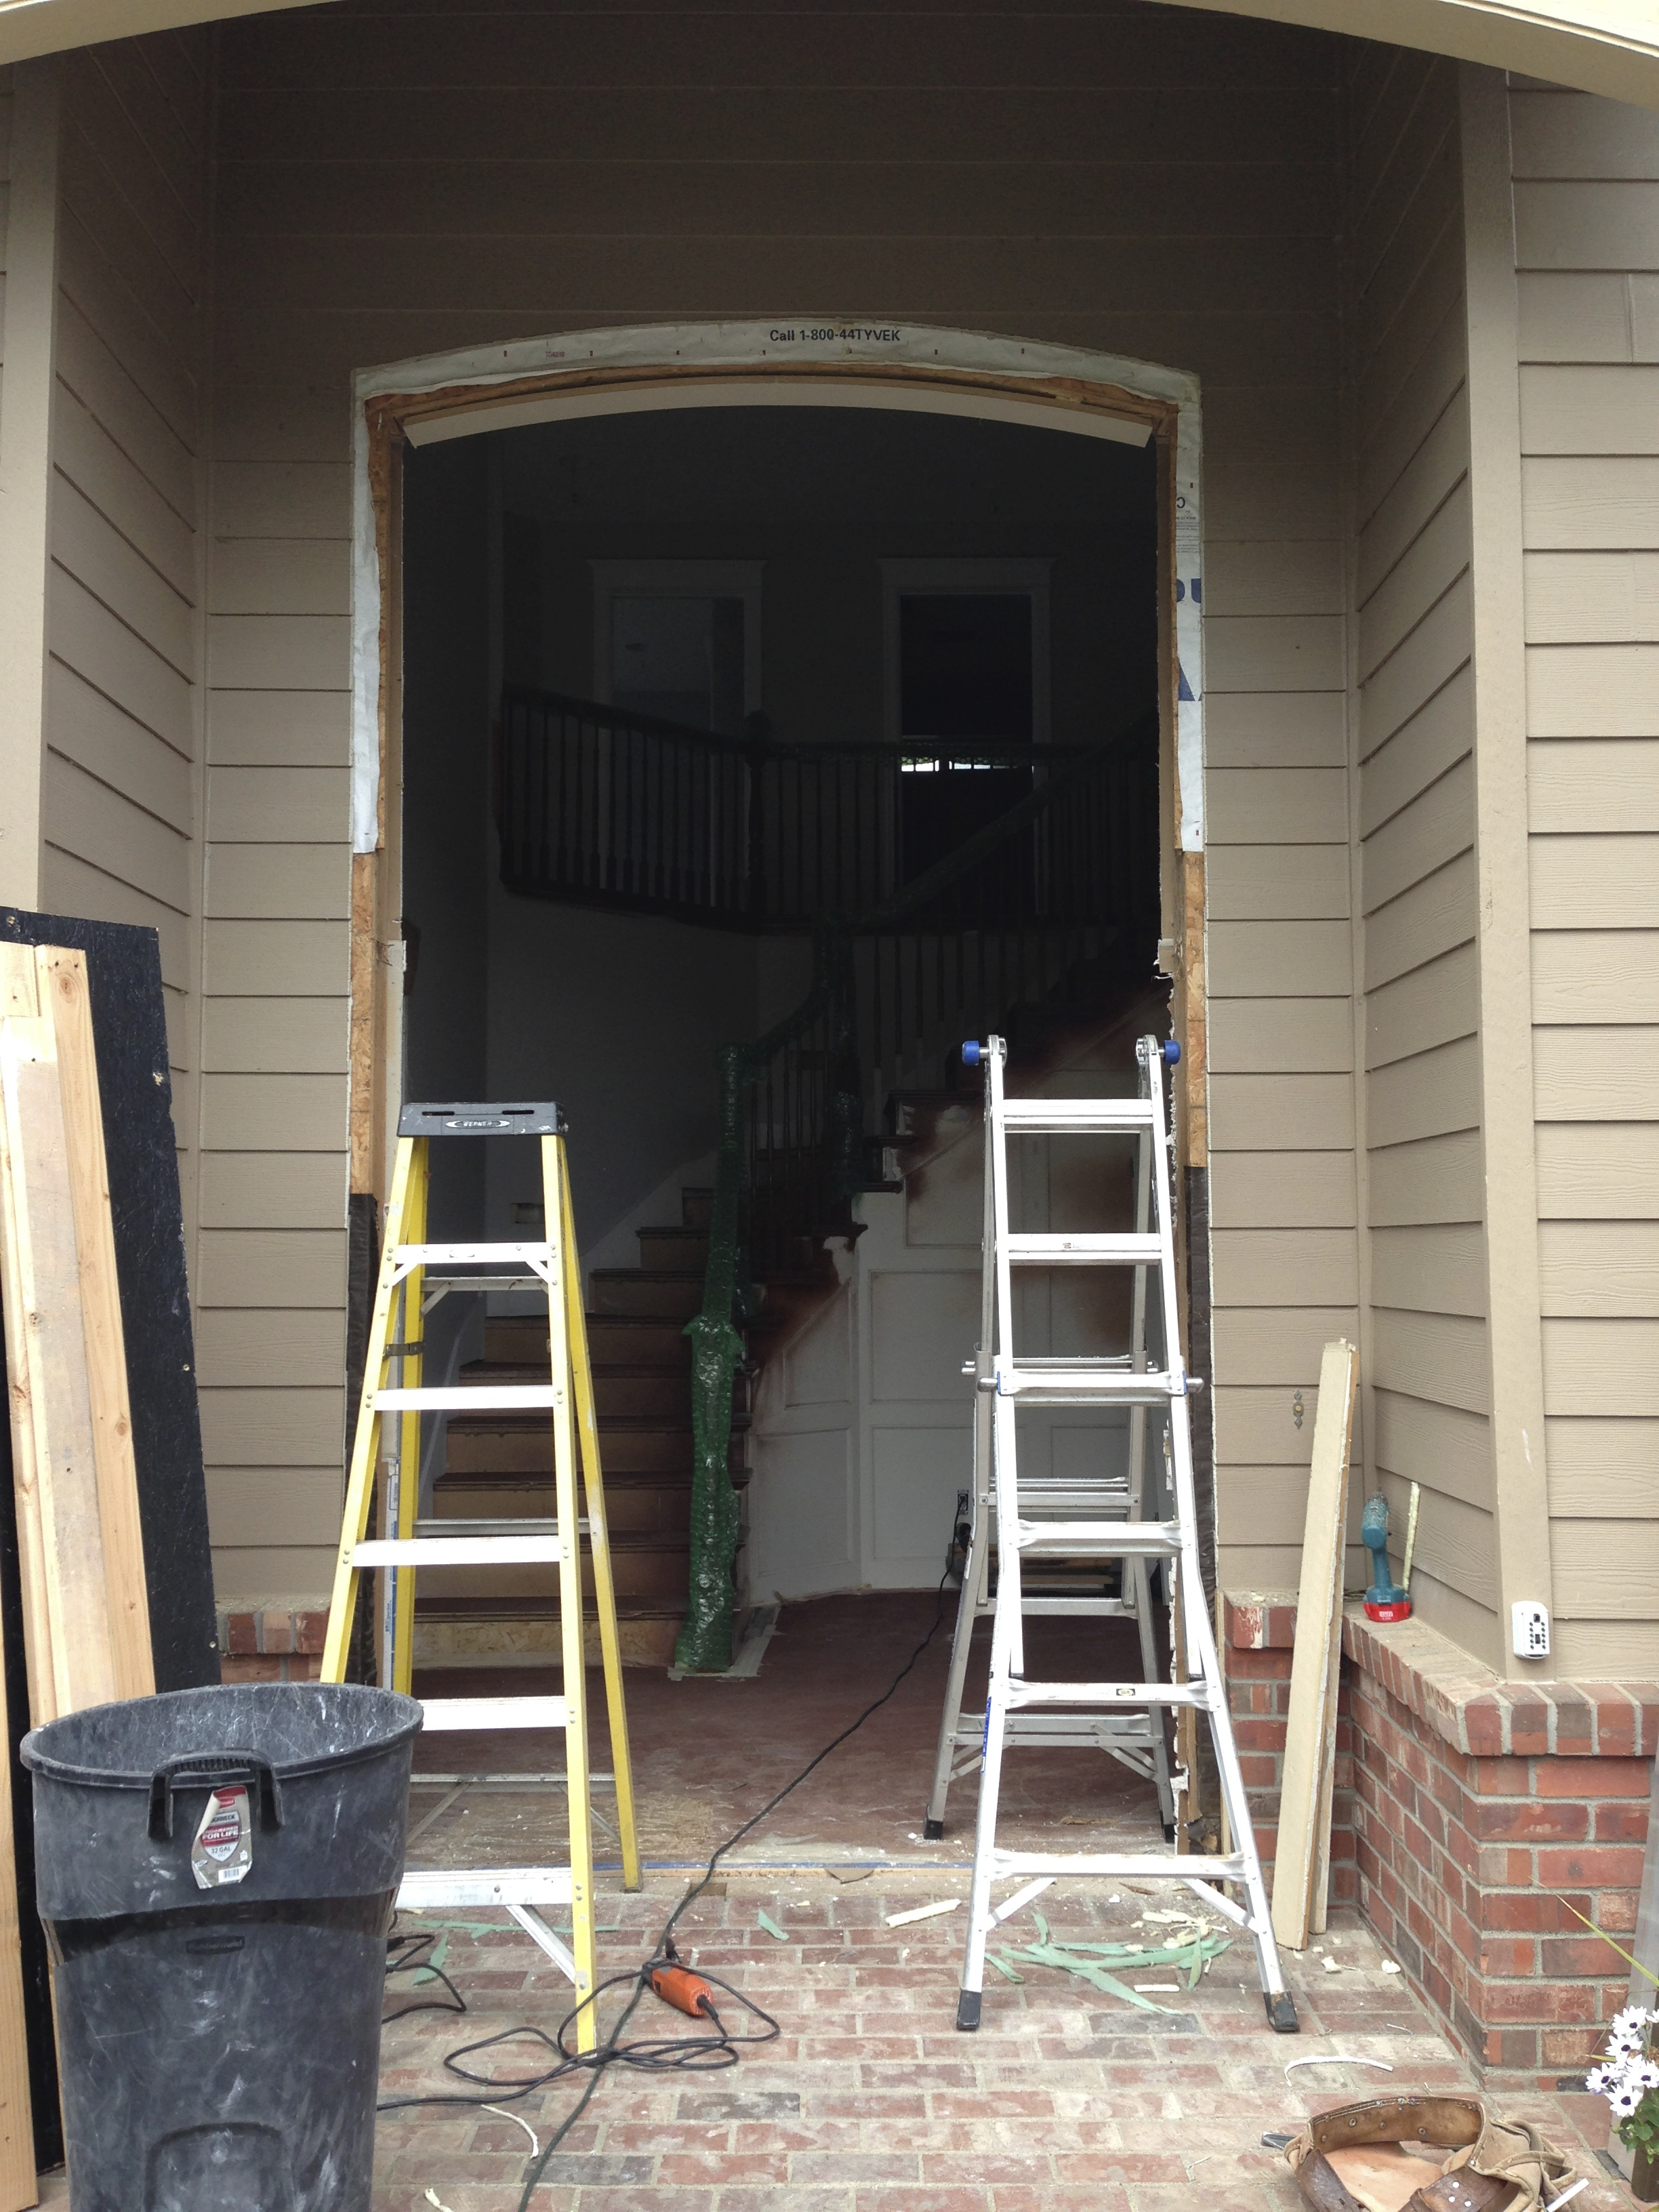 Removing the old window and preparing the space for the new door.